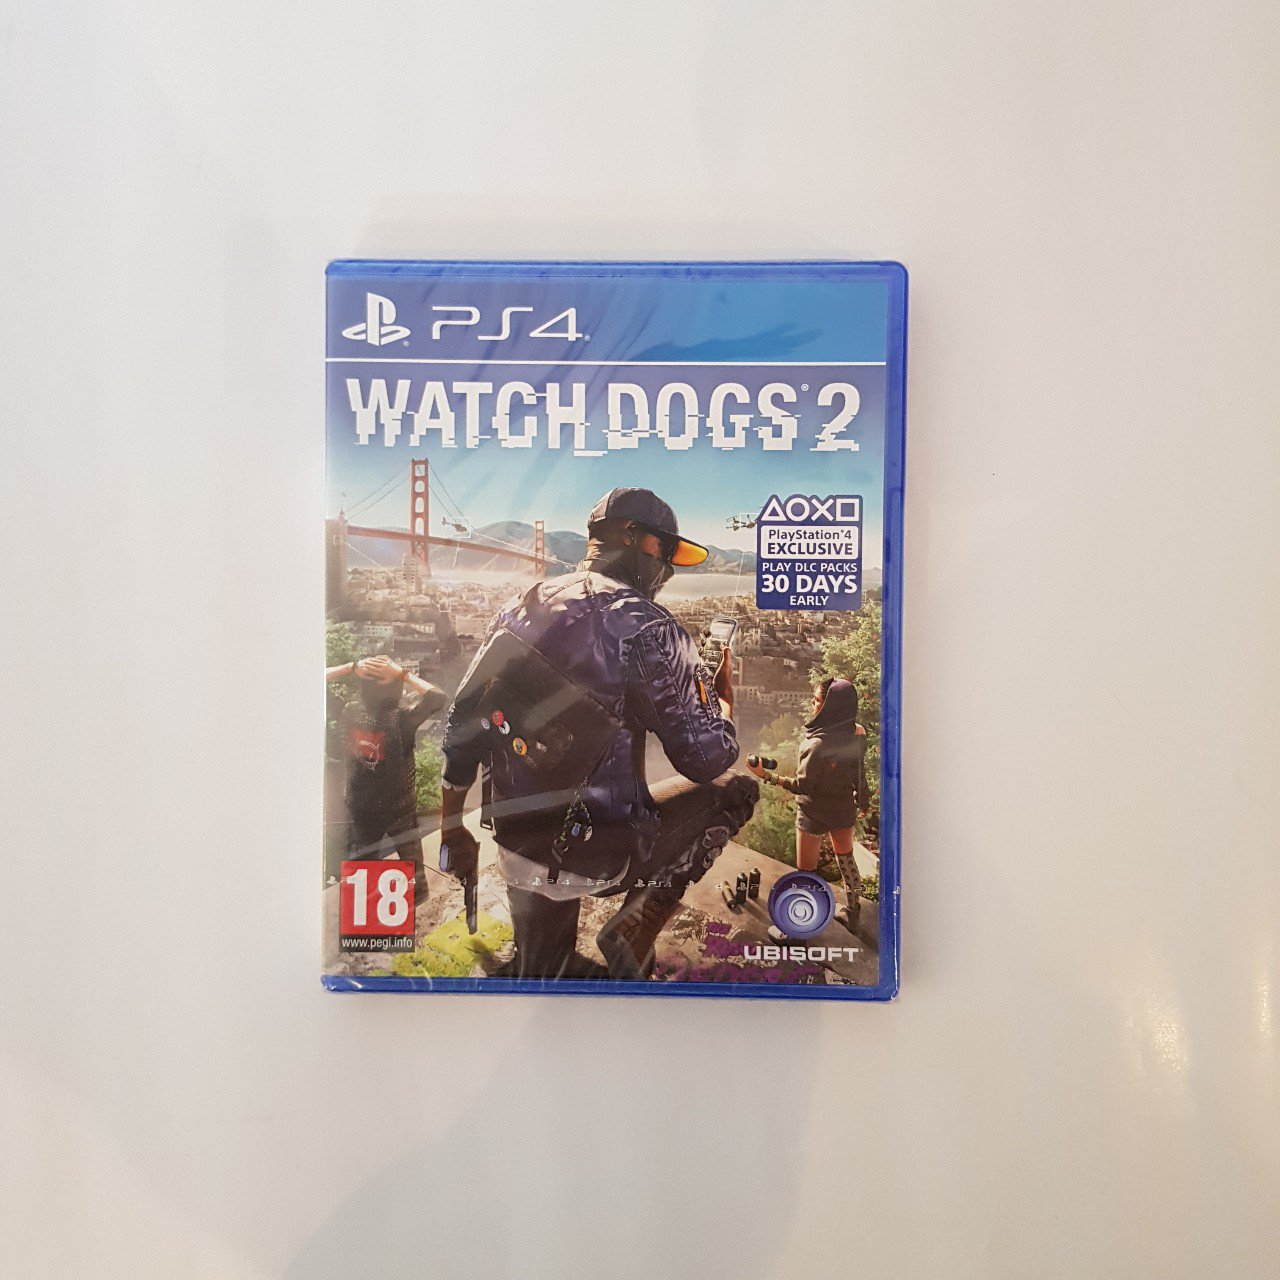 Watchdogs 2 Ps4 Game Brand New Still In The 4 Depop Sony Watch Dogs